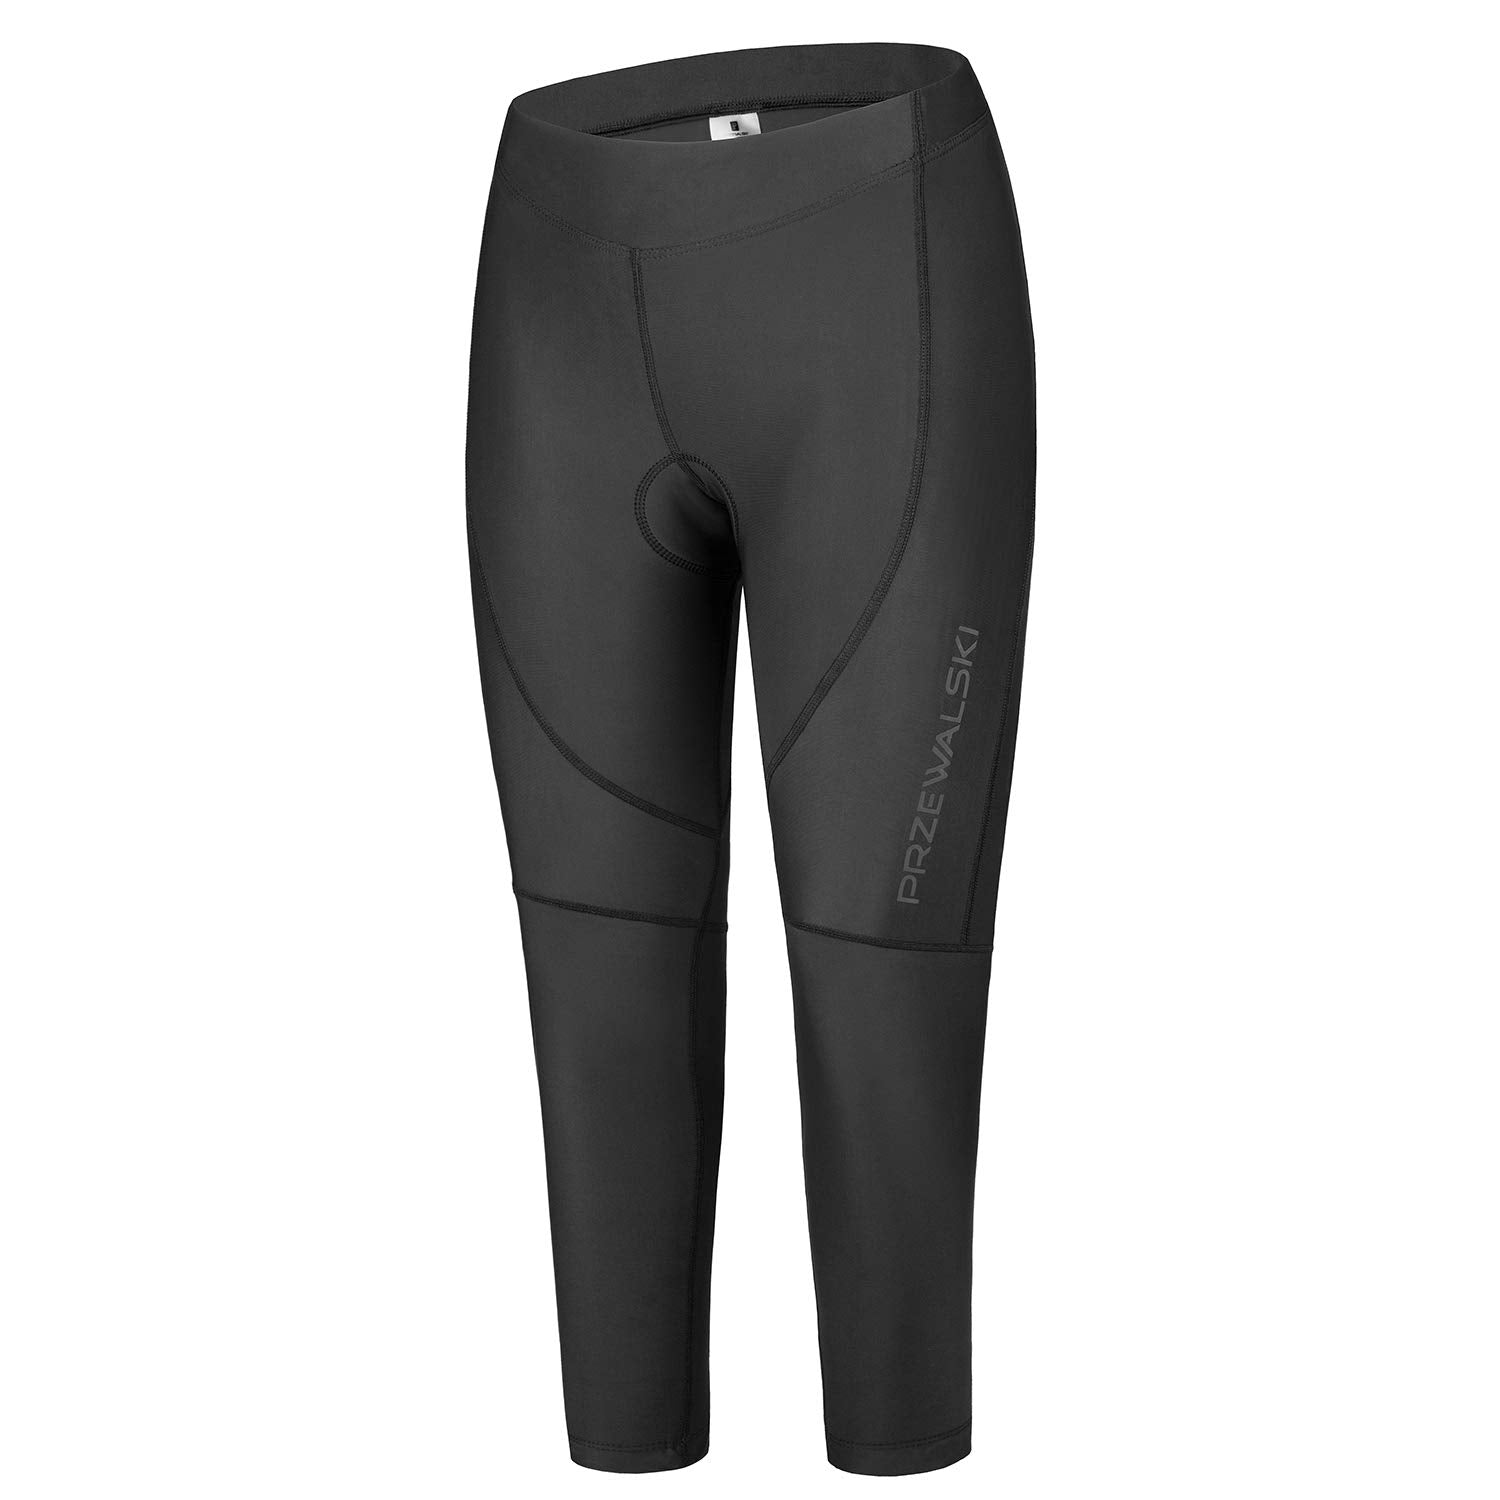 4D Padded Women's Cycling Tights, BASIC SERIES, Przewalski